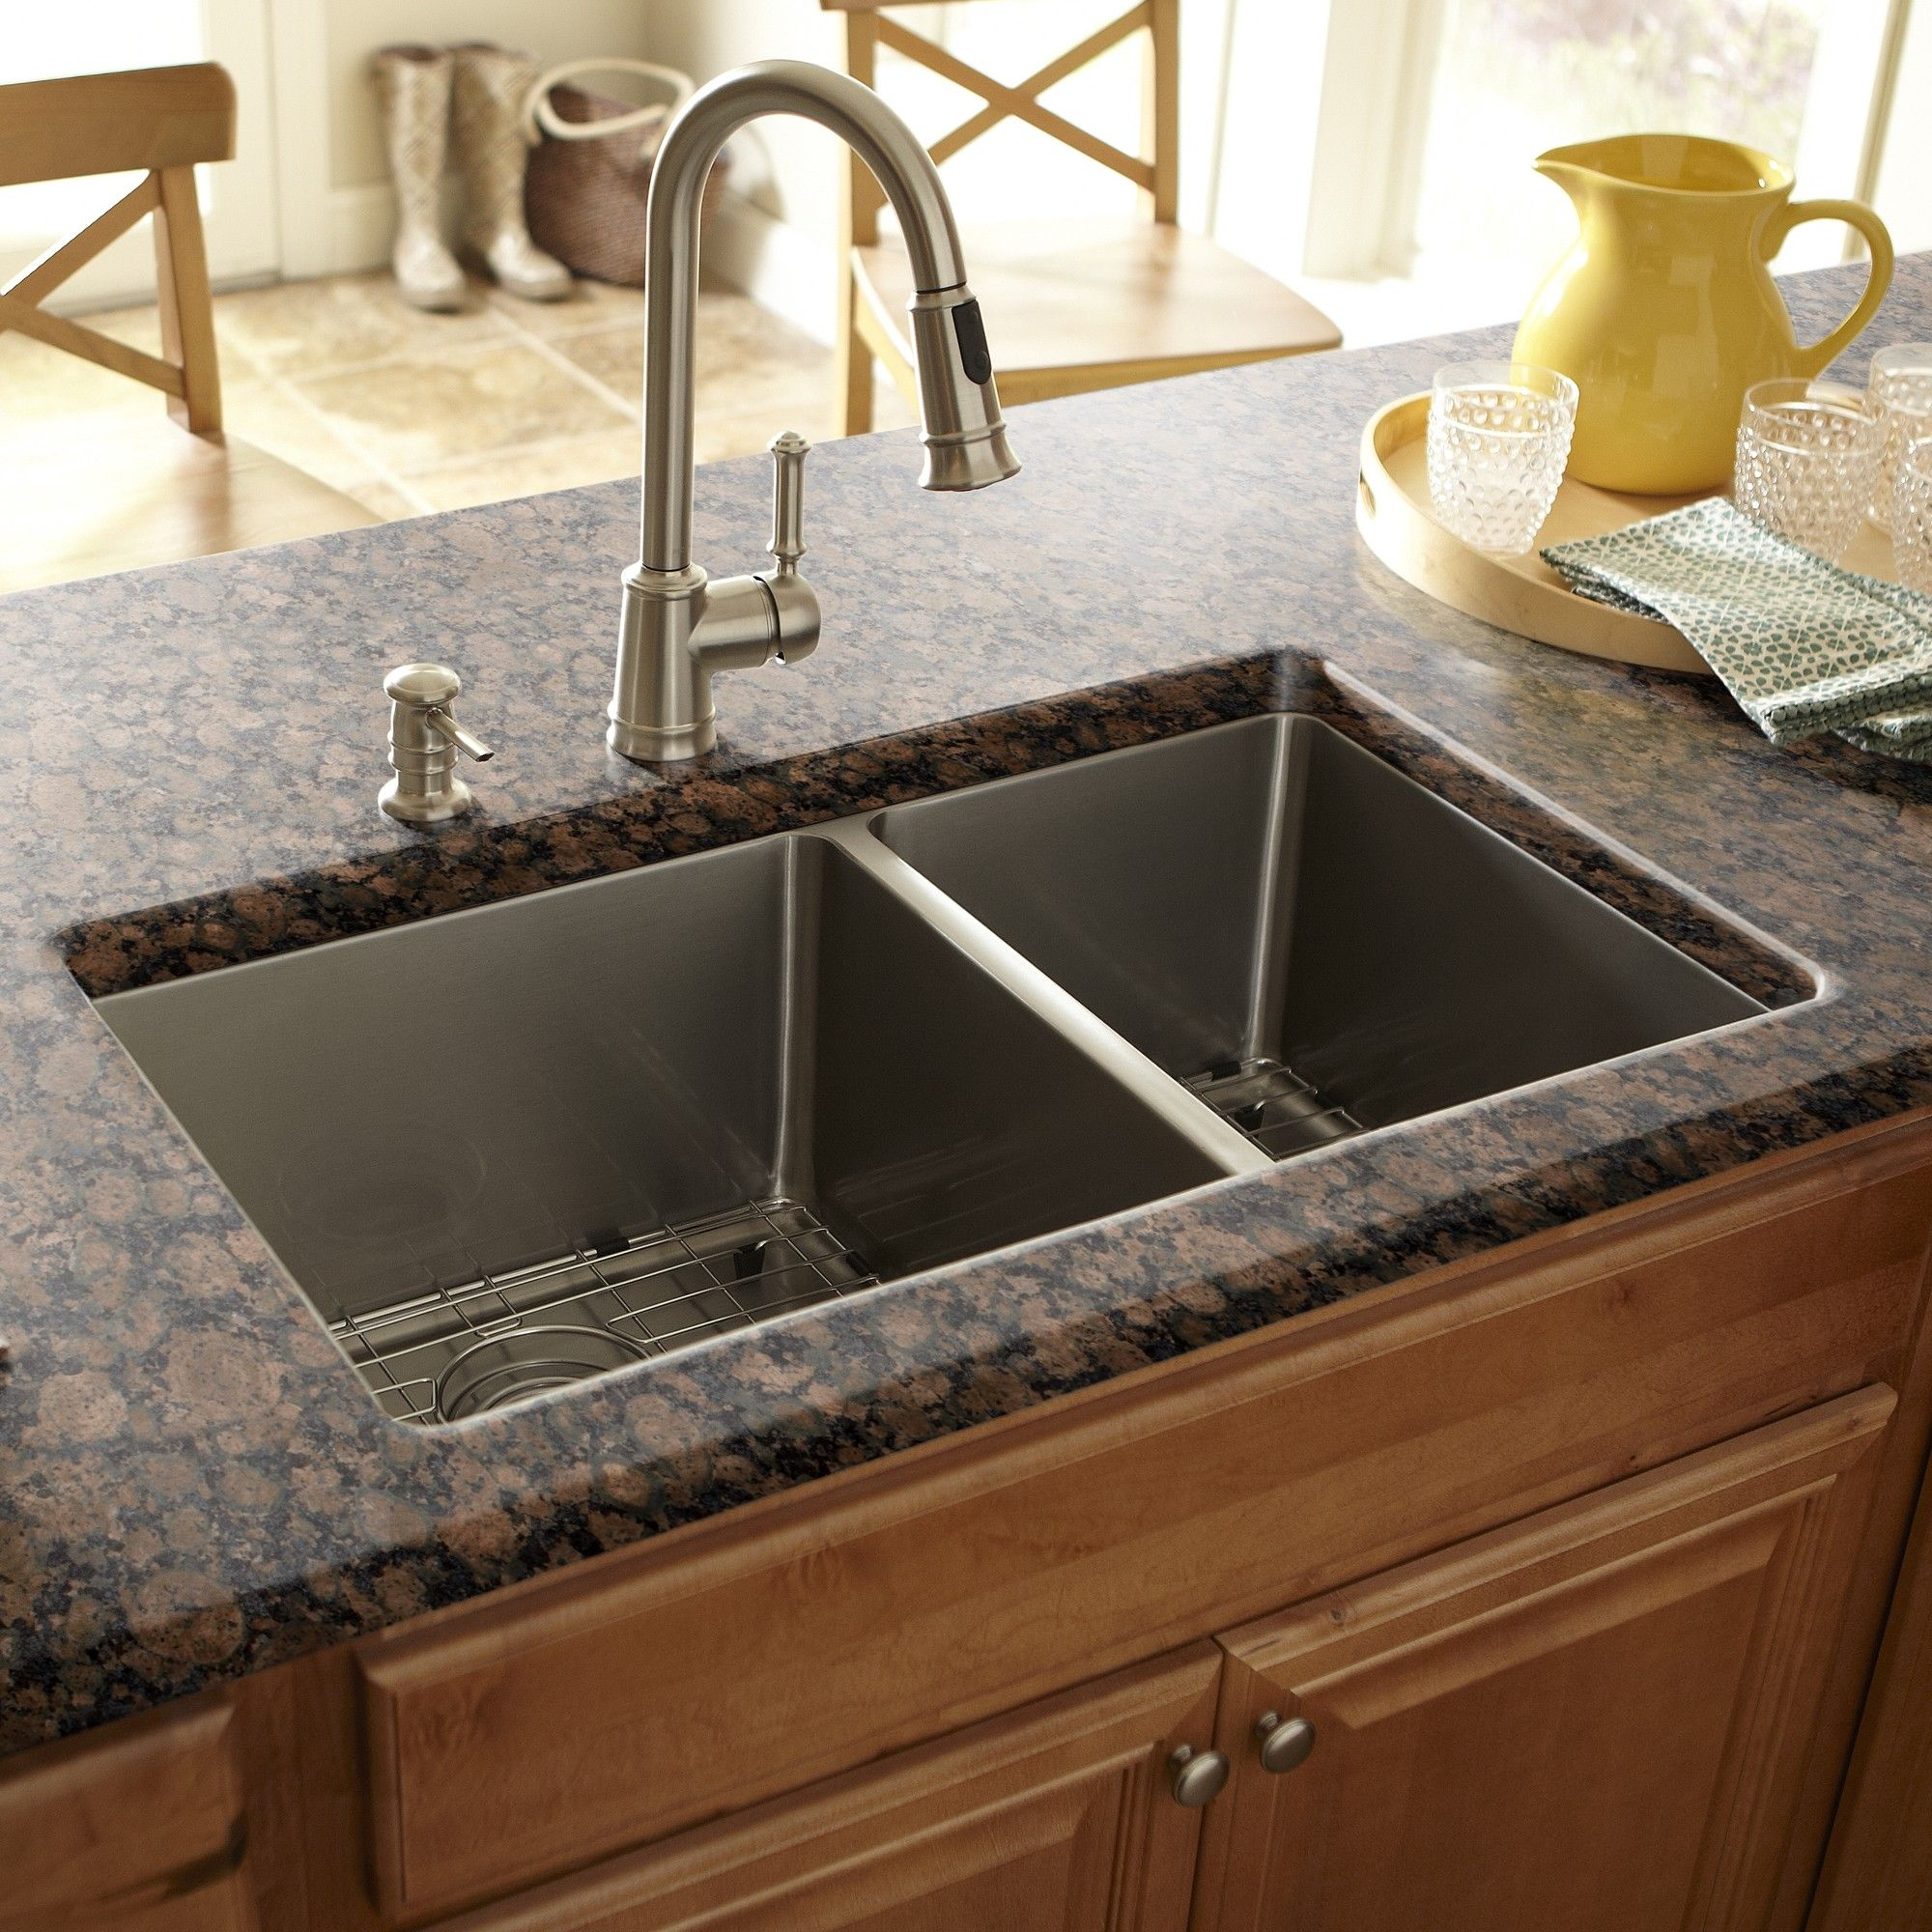 Schon 30 X 17 Double Bowl Kitchen Sink Reviews Wayfair Sink Contemporary Kitchen Sinks Undermount Kitchen Sinks Best Kitchen Sinks